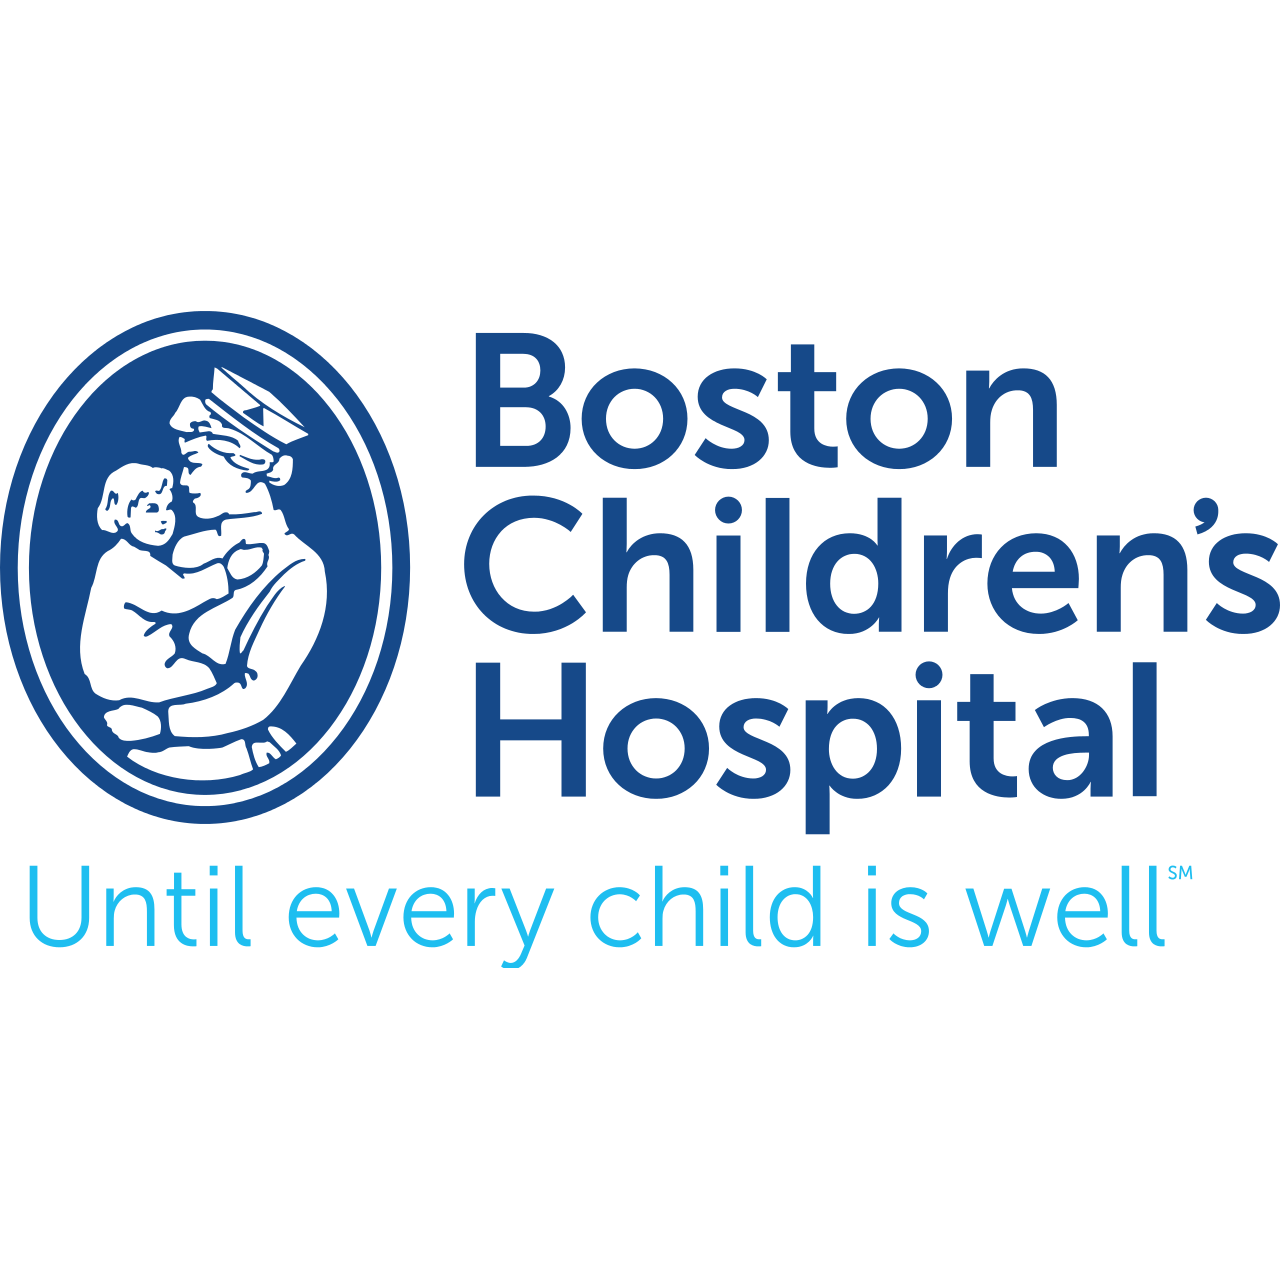 Boston_Children's_Hospital_logo.svg